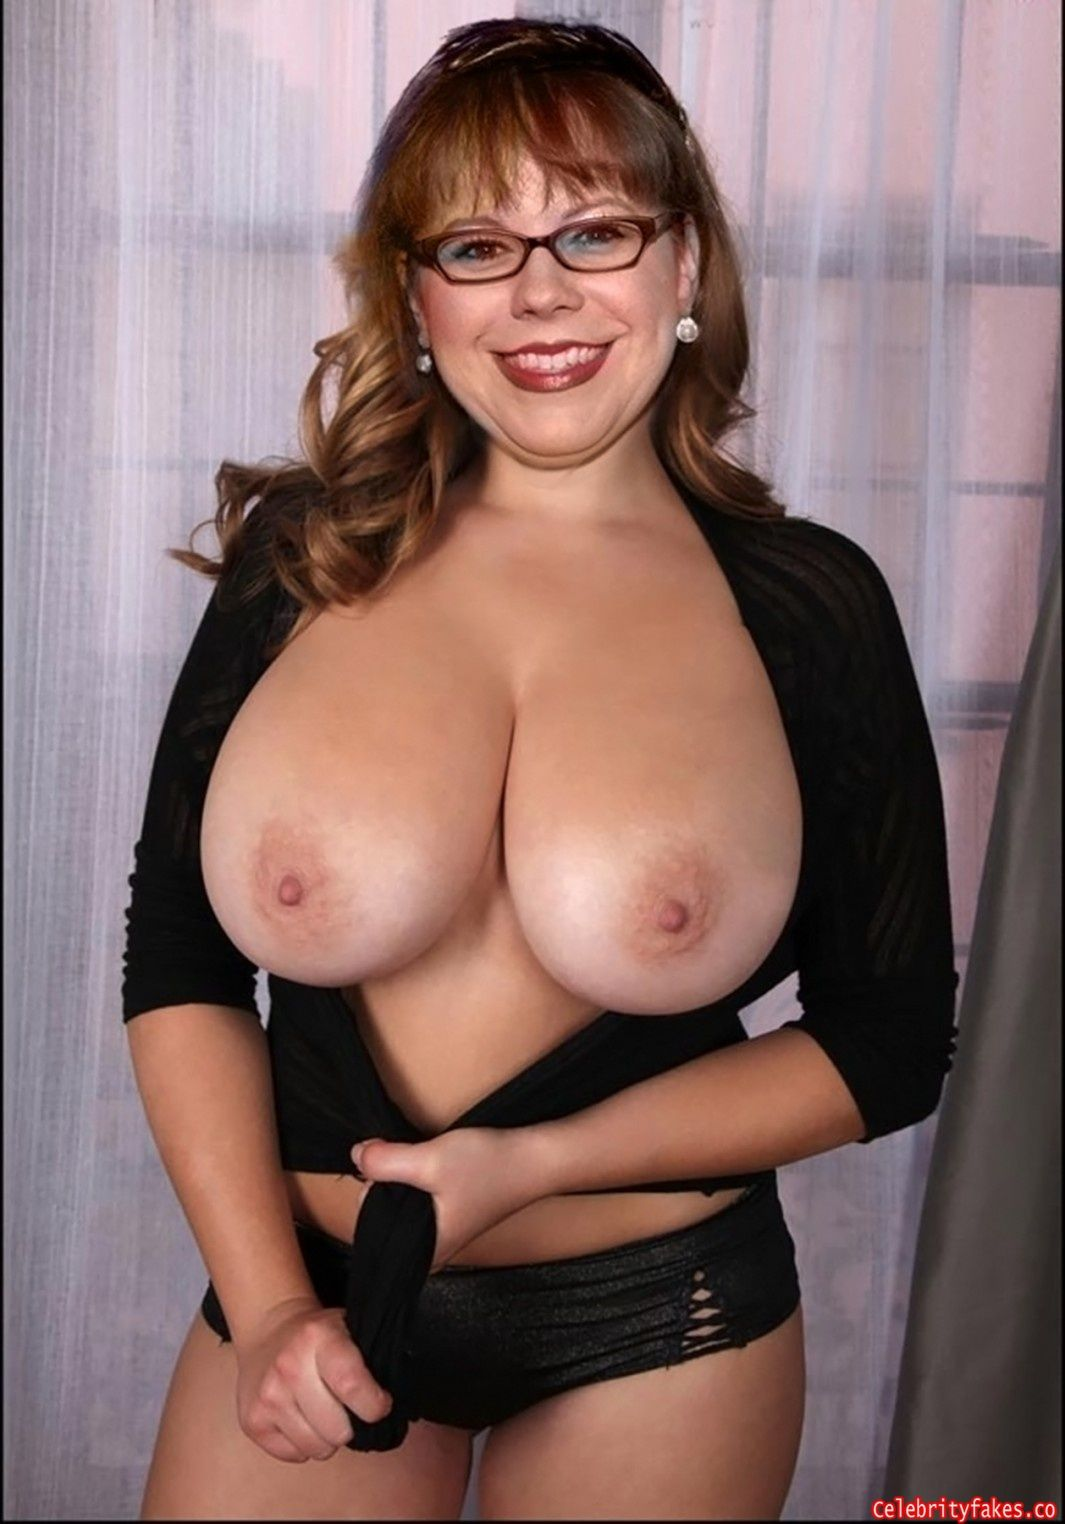 Think, Kirsten vangsness hot nude